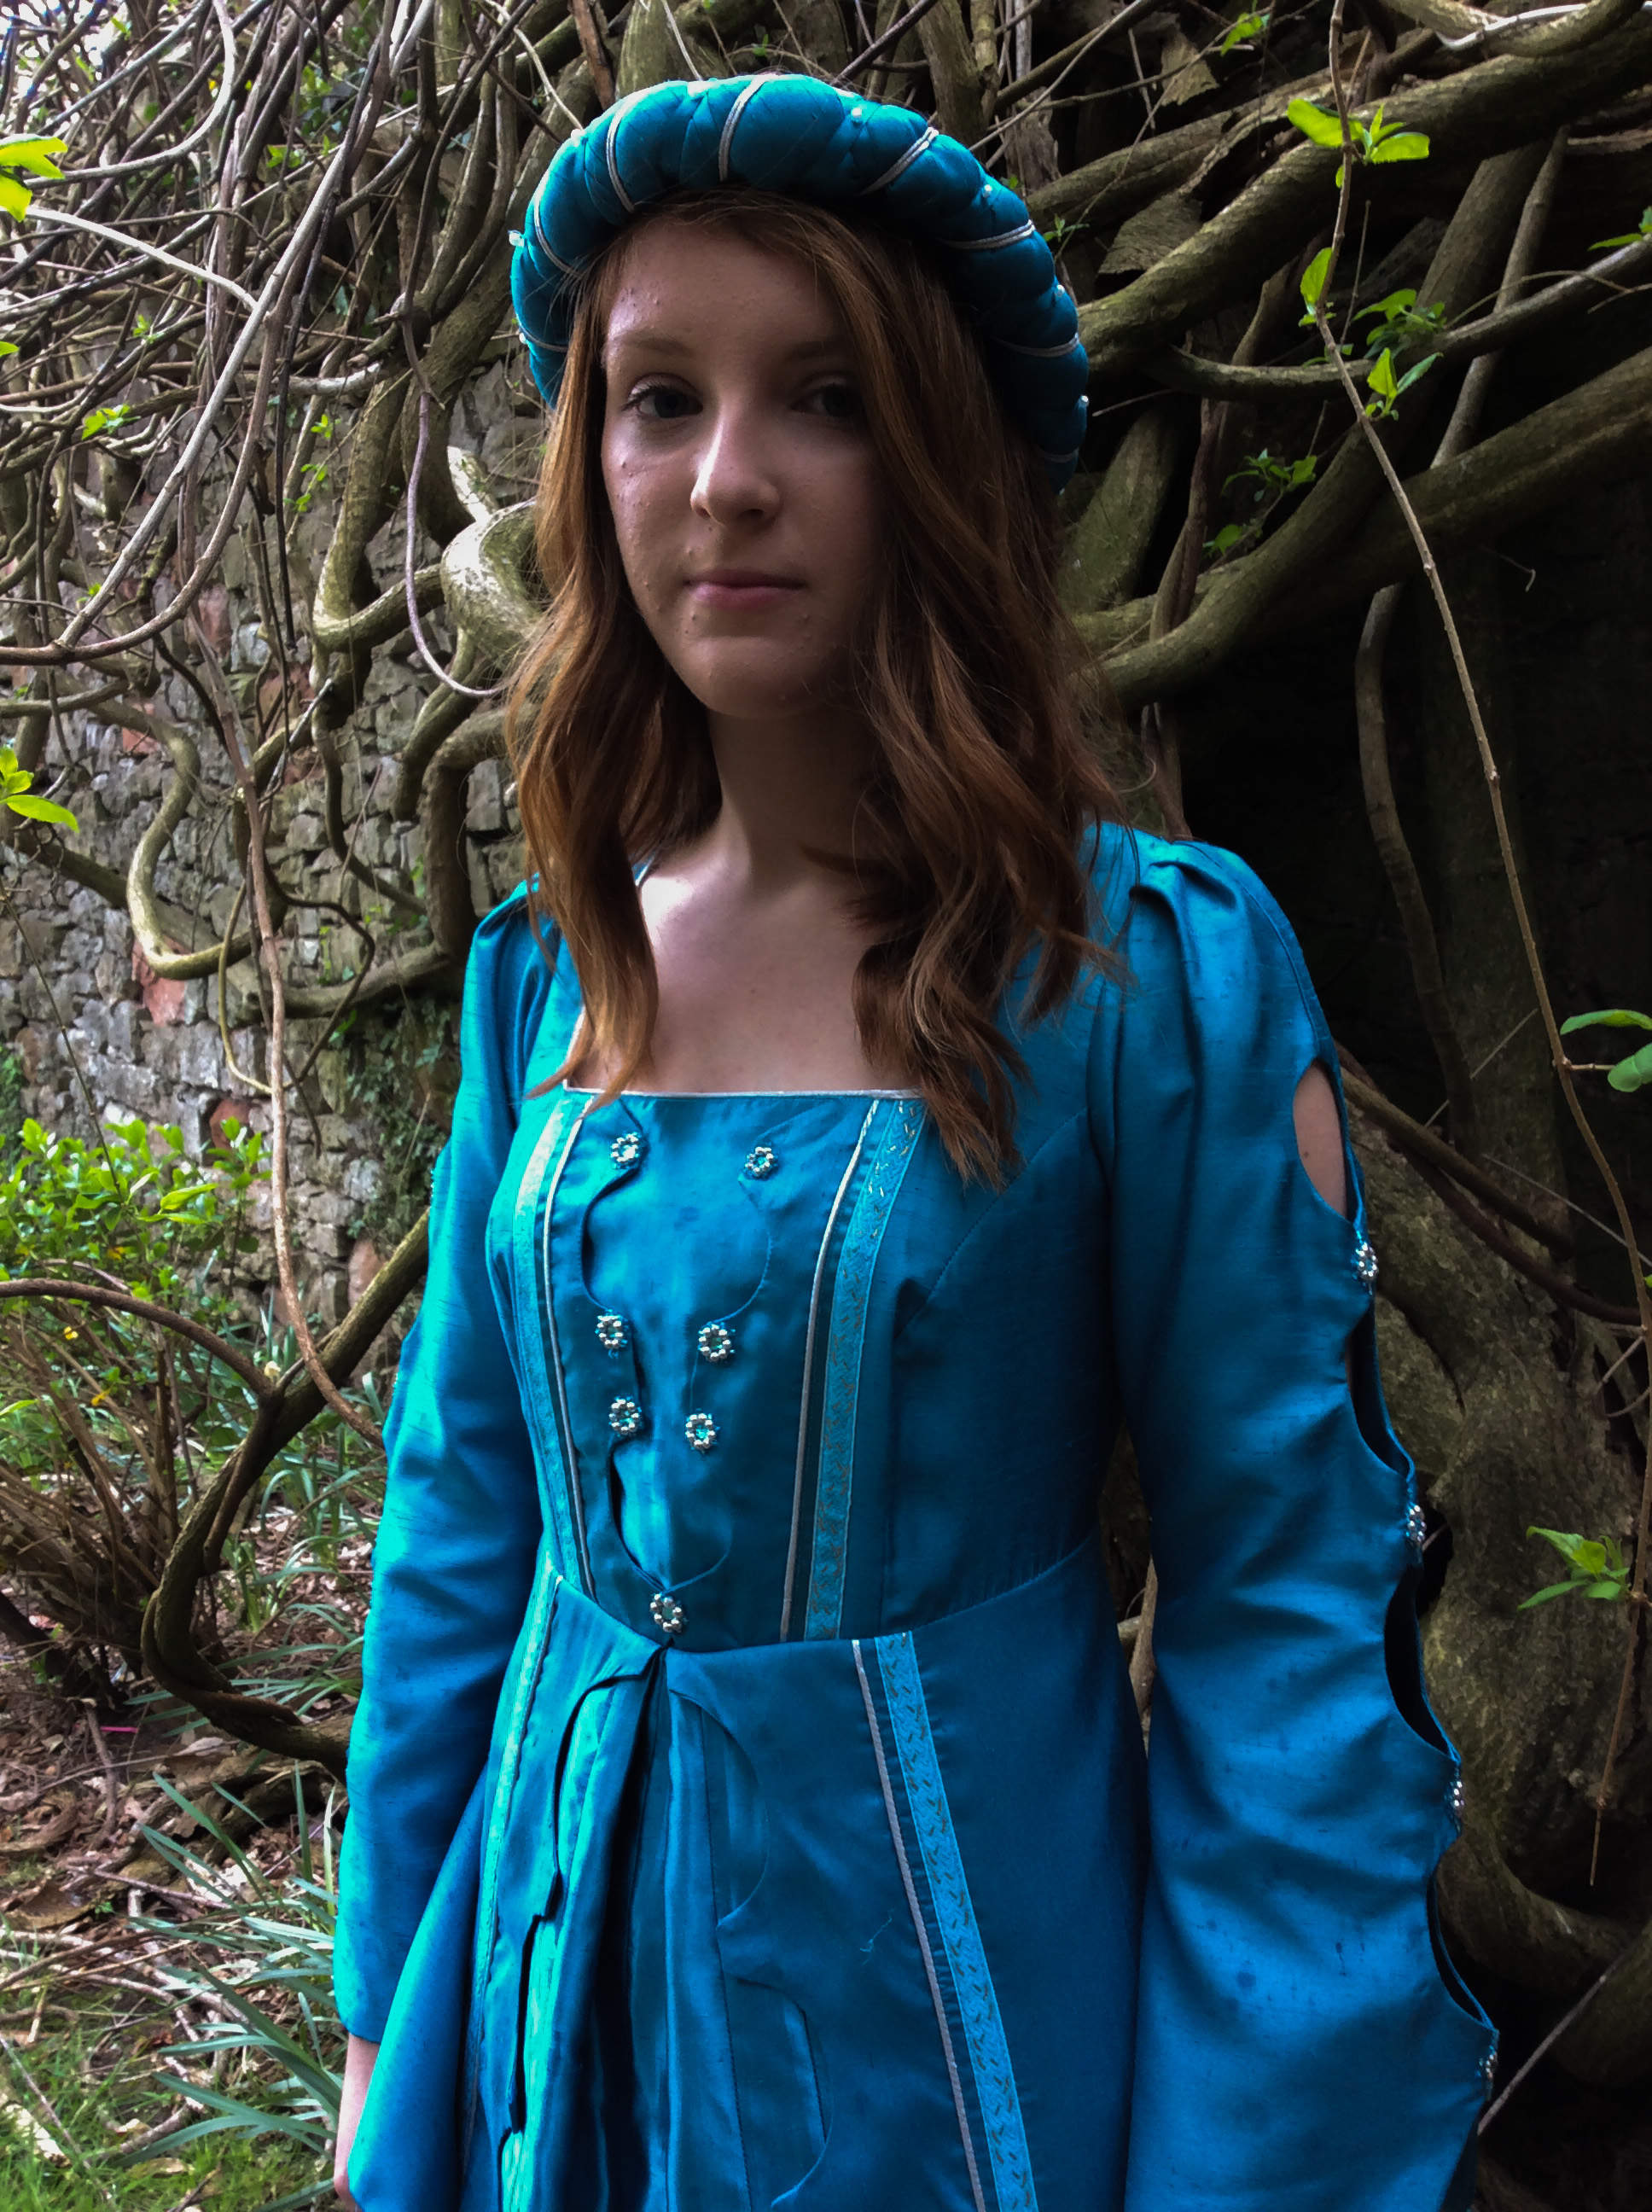 Turquoise medieval gown with square neckline